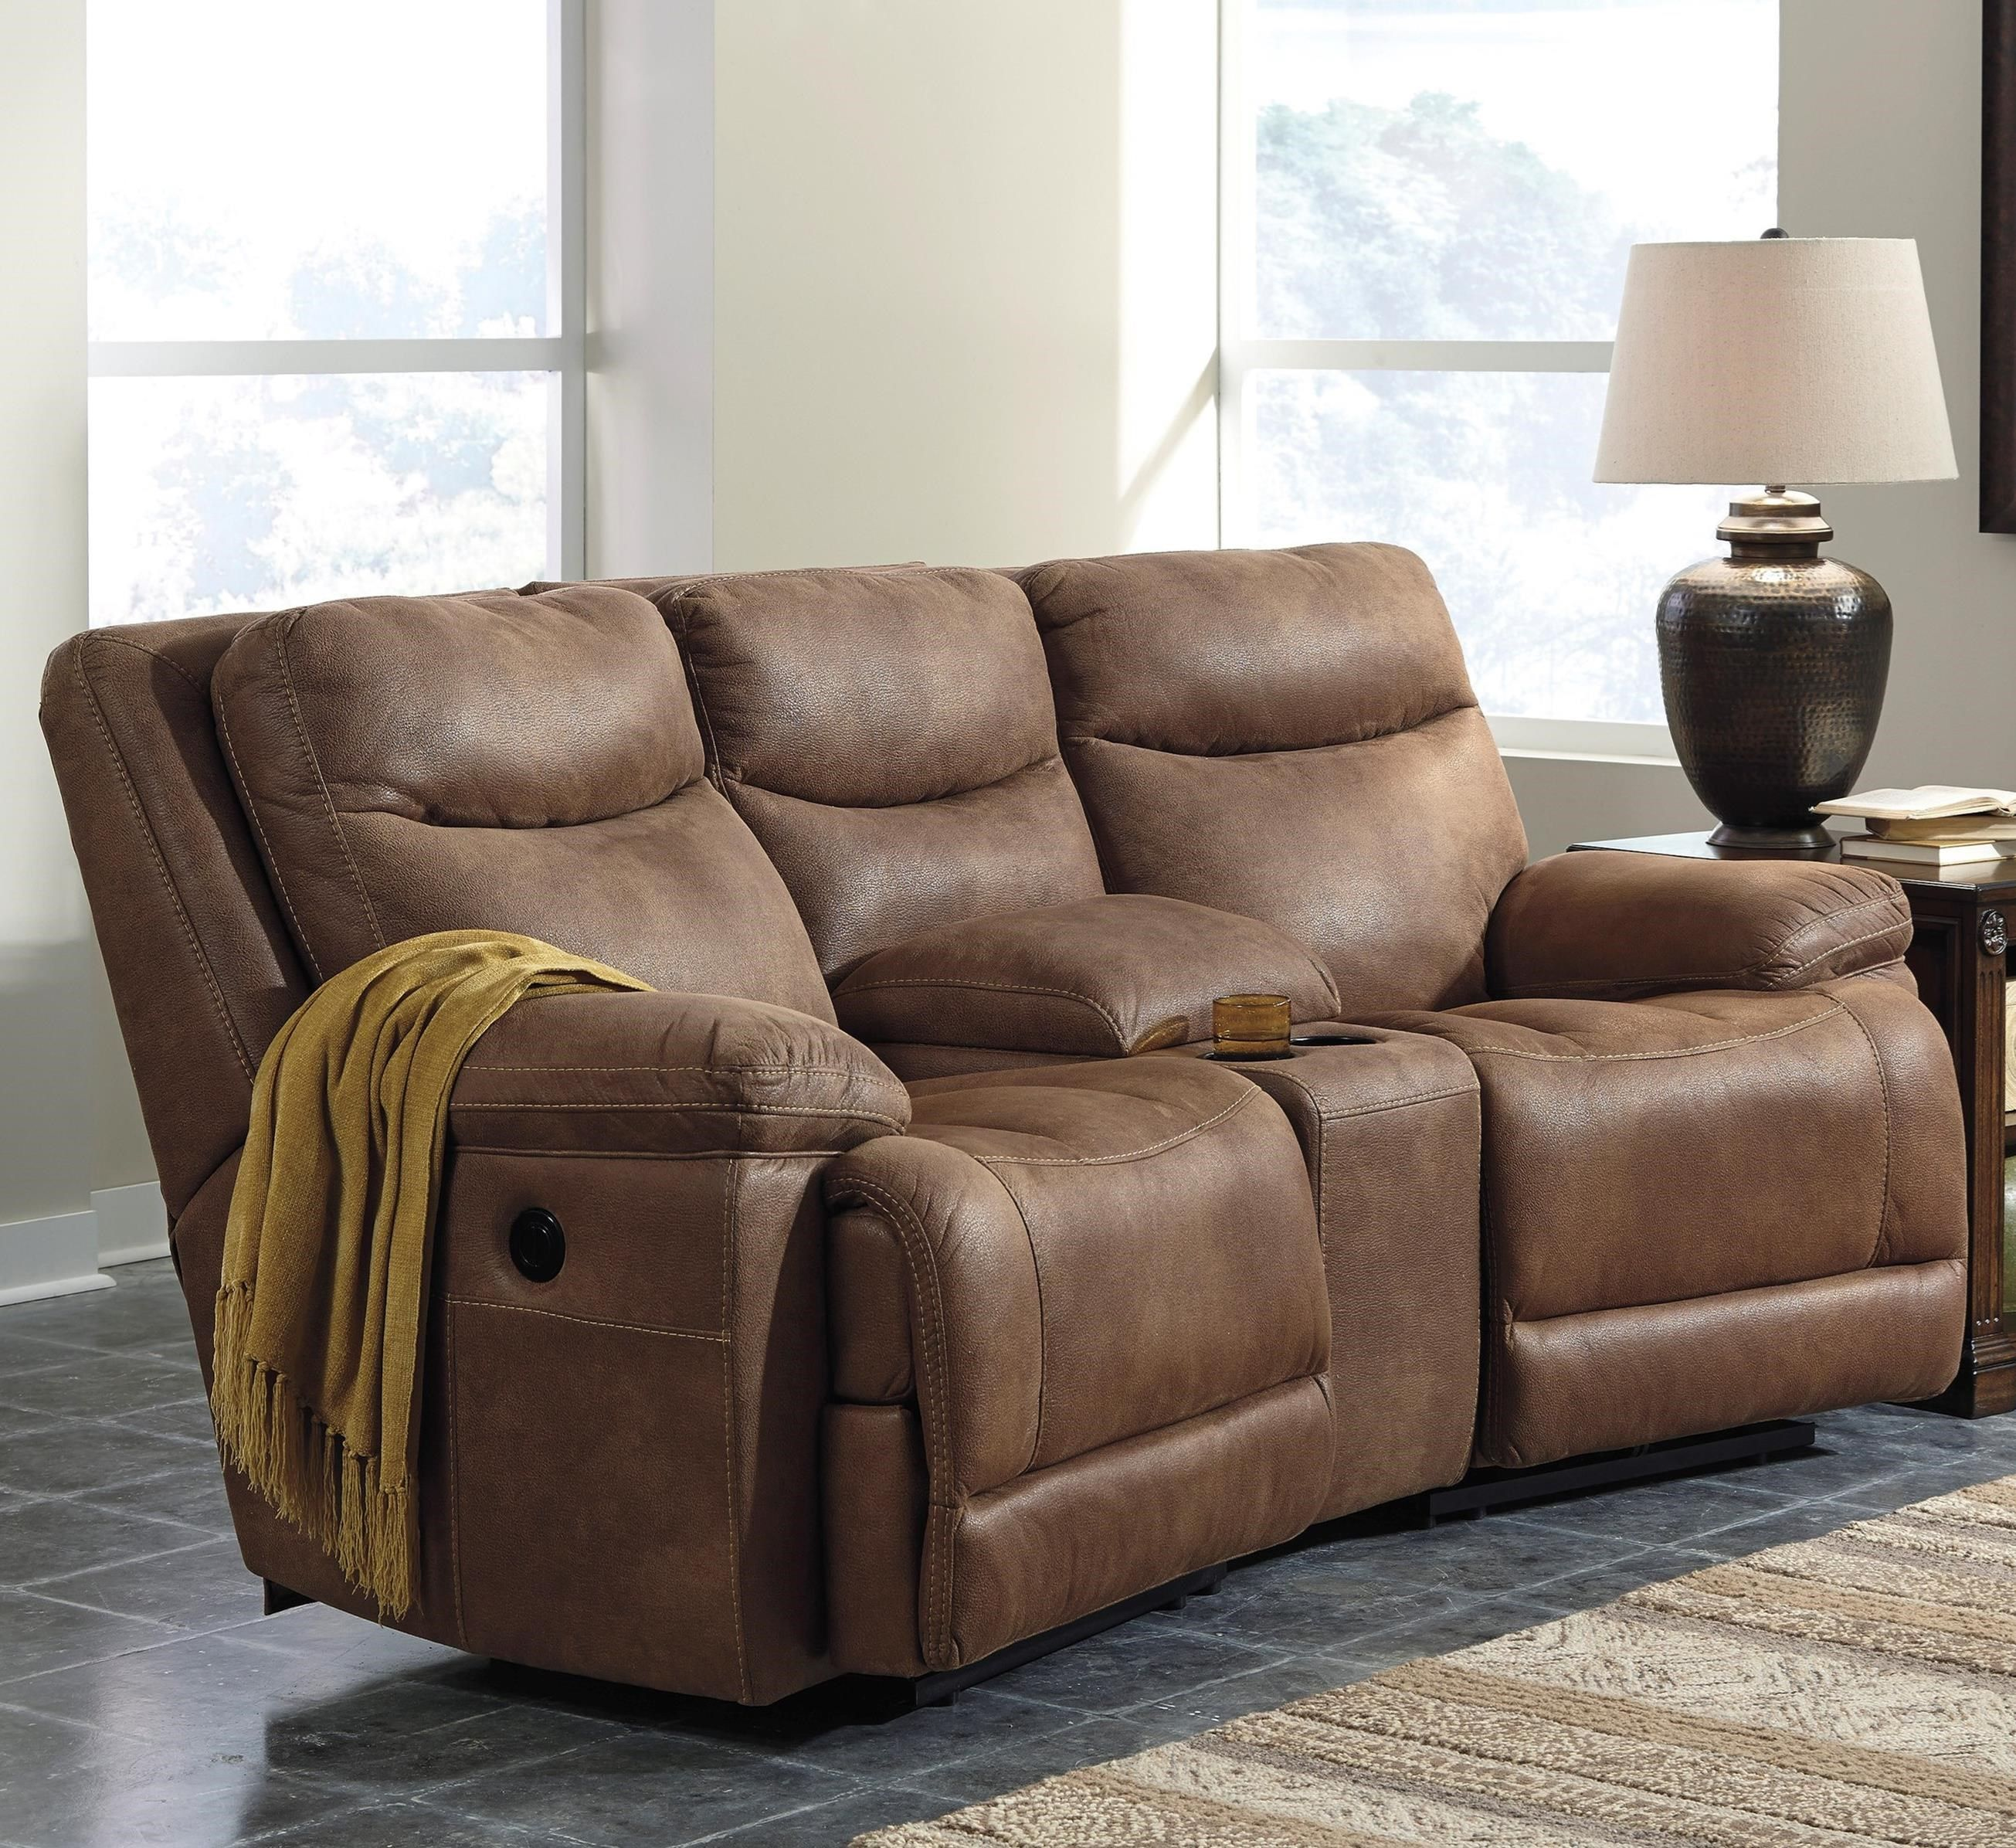 Valto Power Reclining Sofa With Angled Console By Signature Design By Ashley Mattress Furniture Recliner Furniture